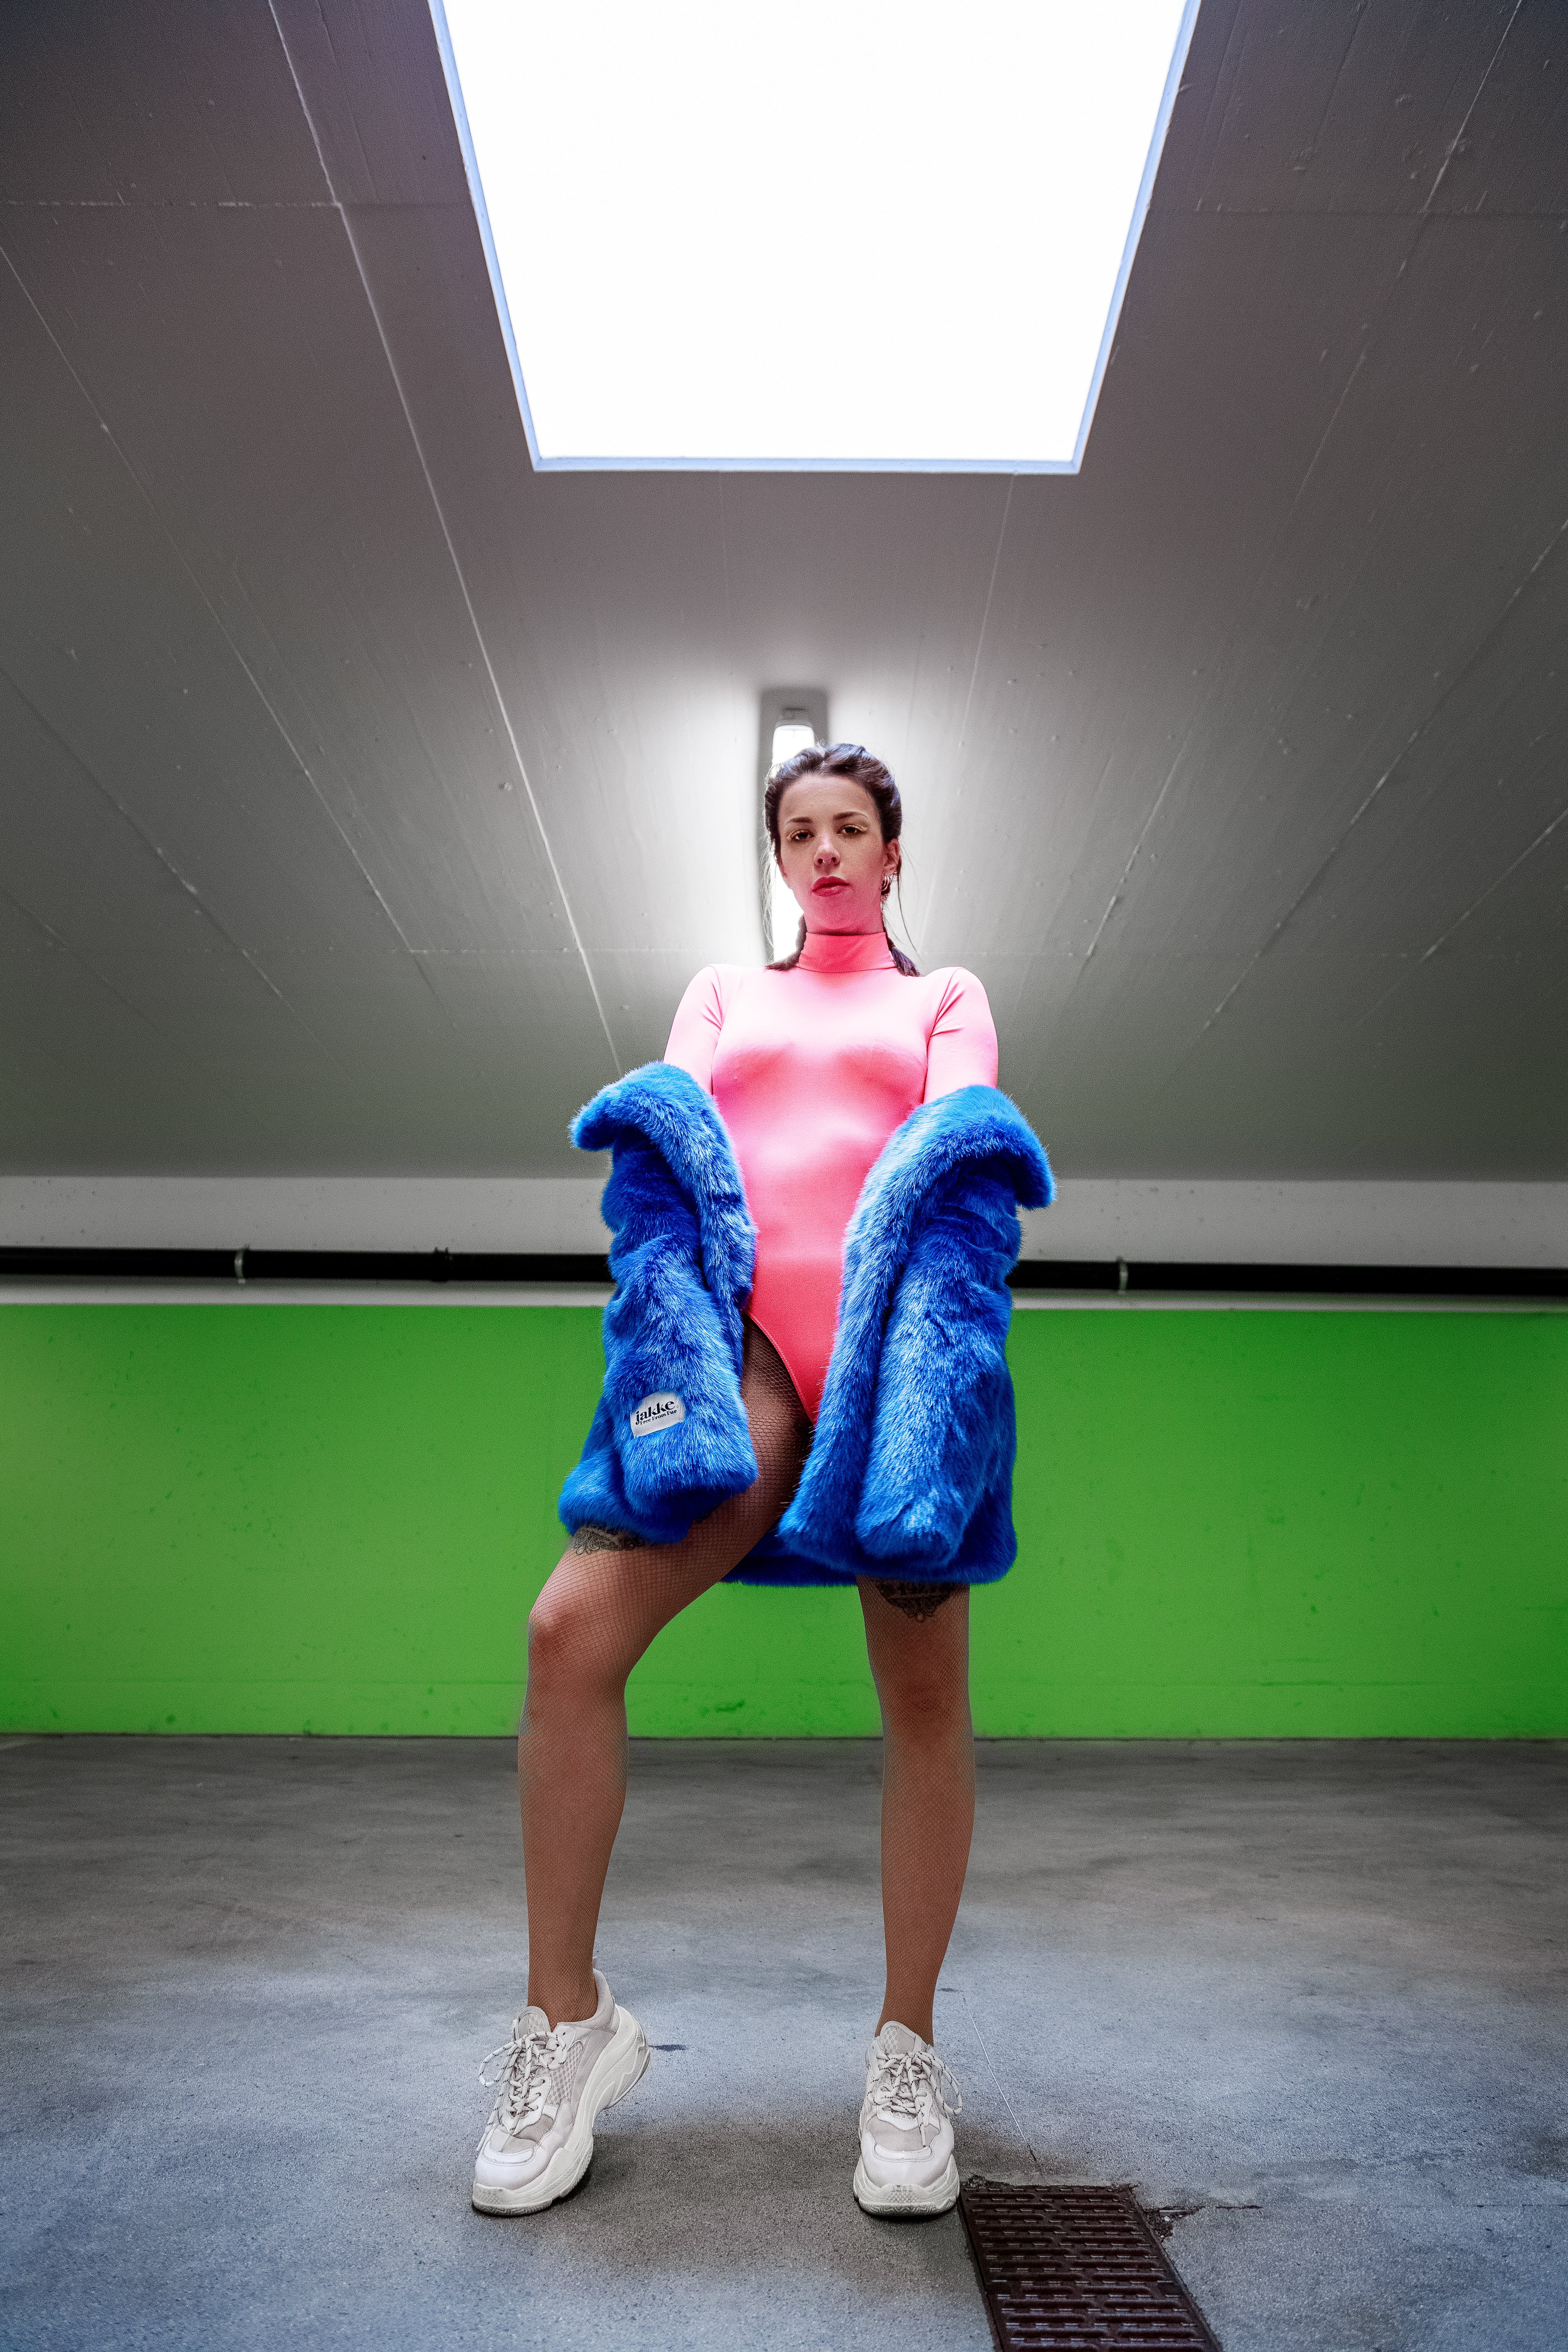 Woman Wearing Pink Bodysuit With Blue Coat